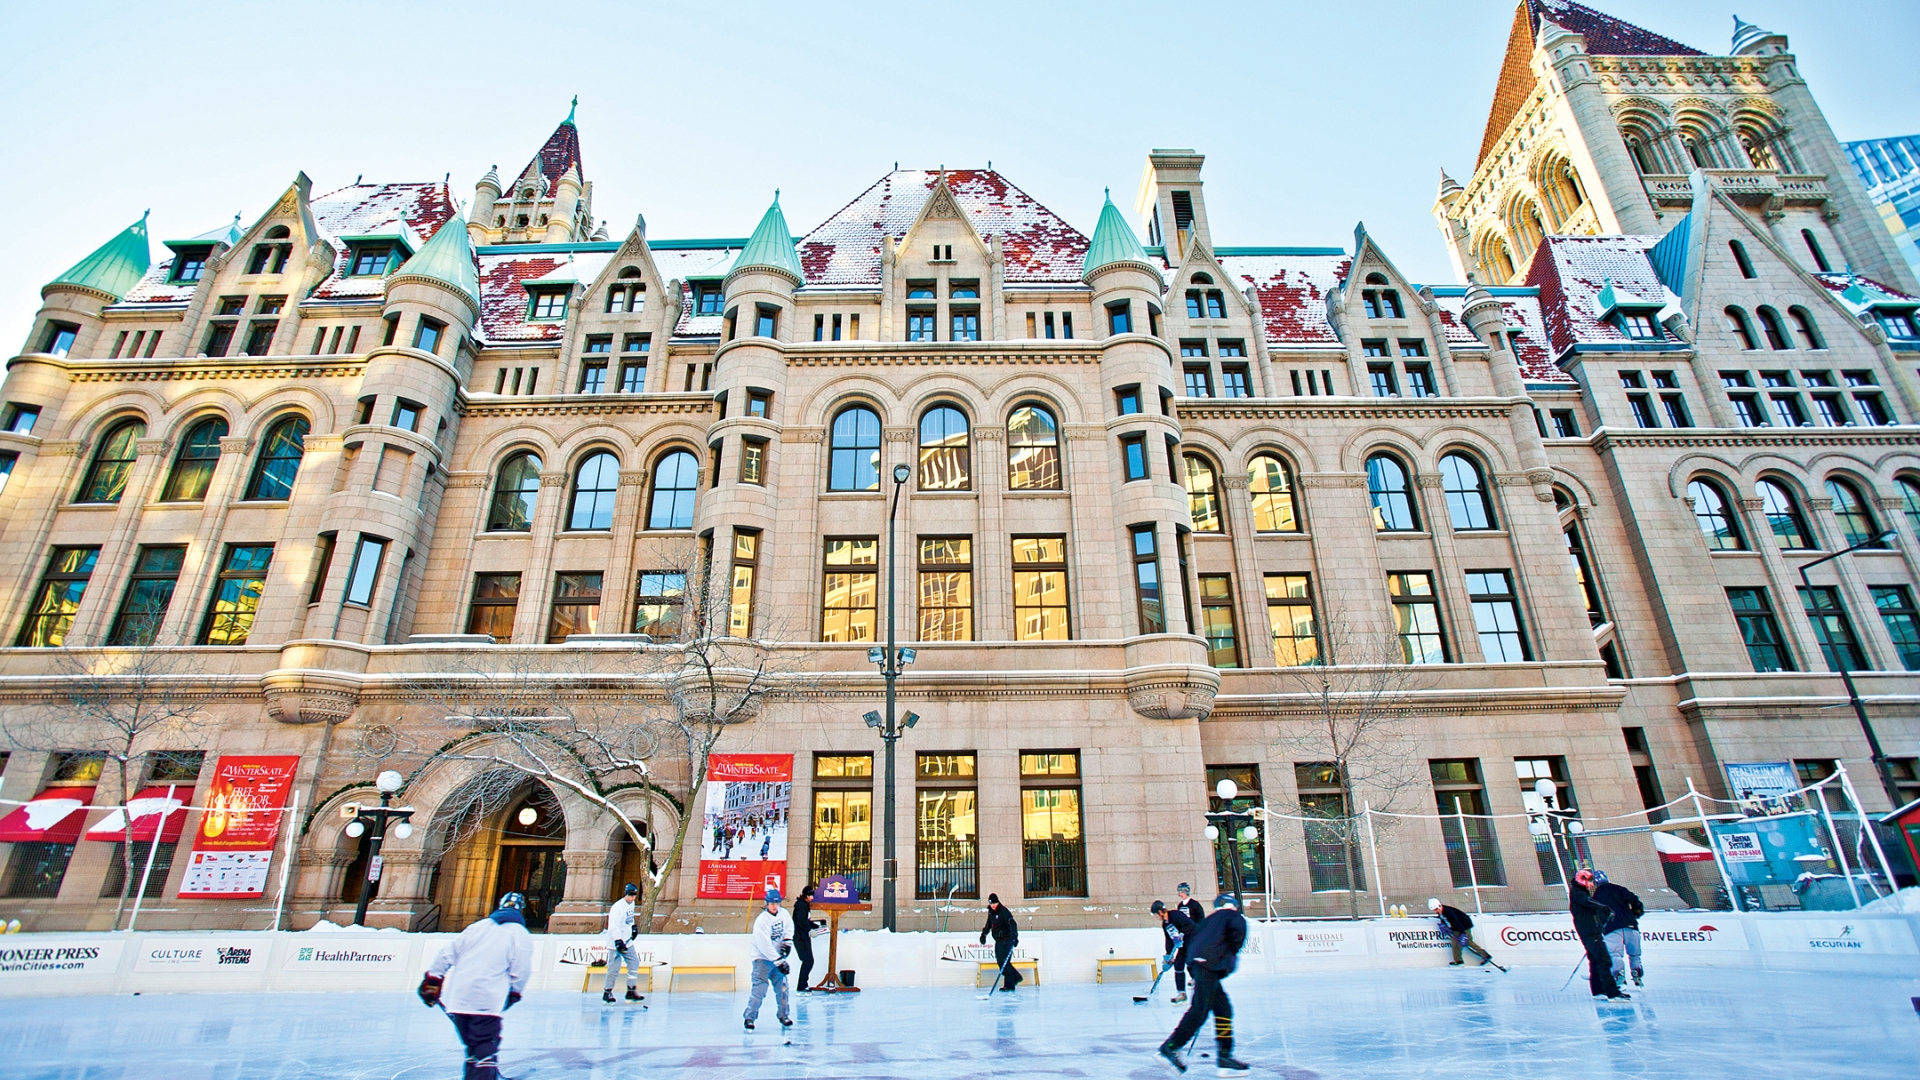 Ice skate in a unique urban setting in downtown Saint Paul next to Landmark Center.